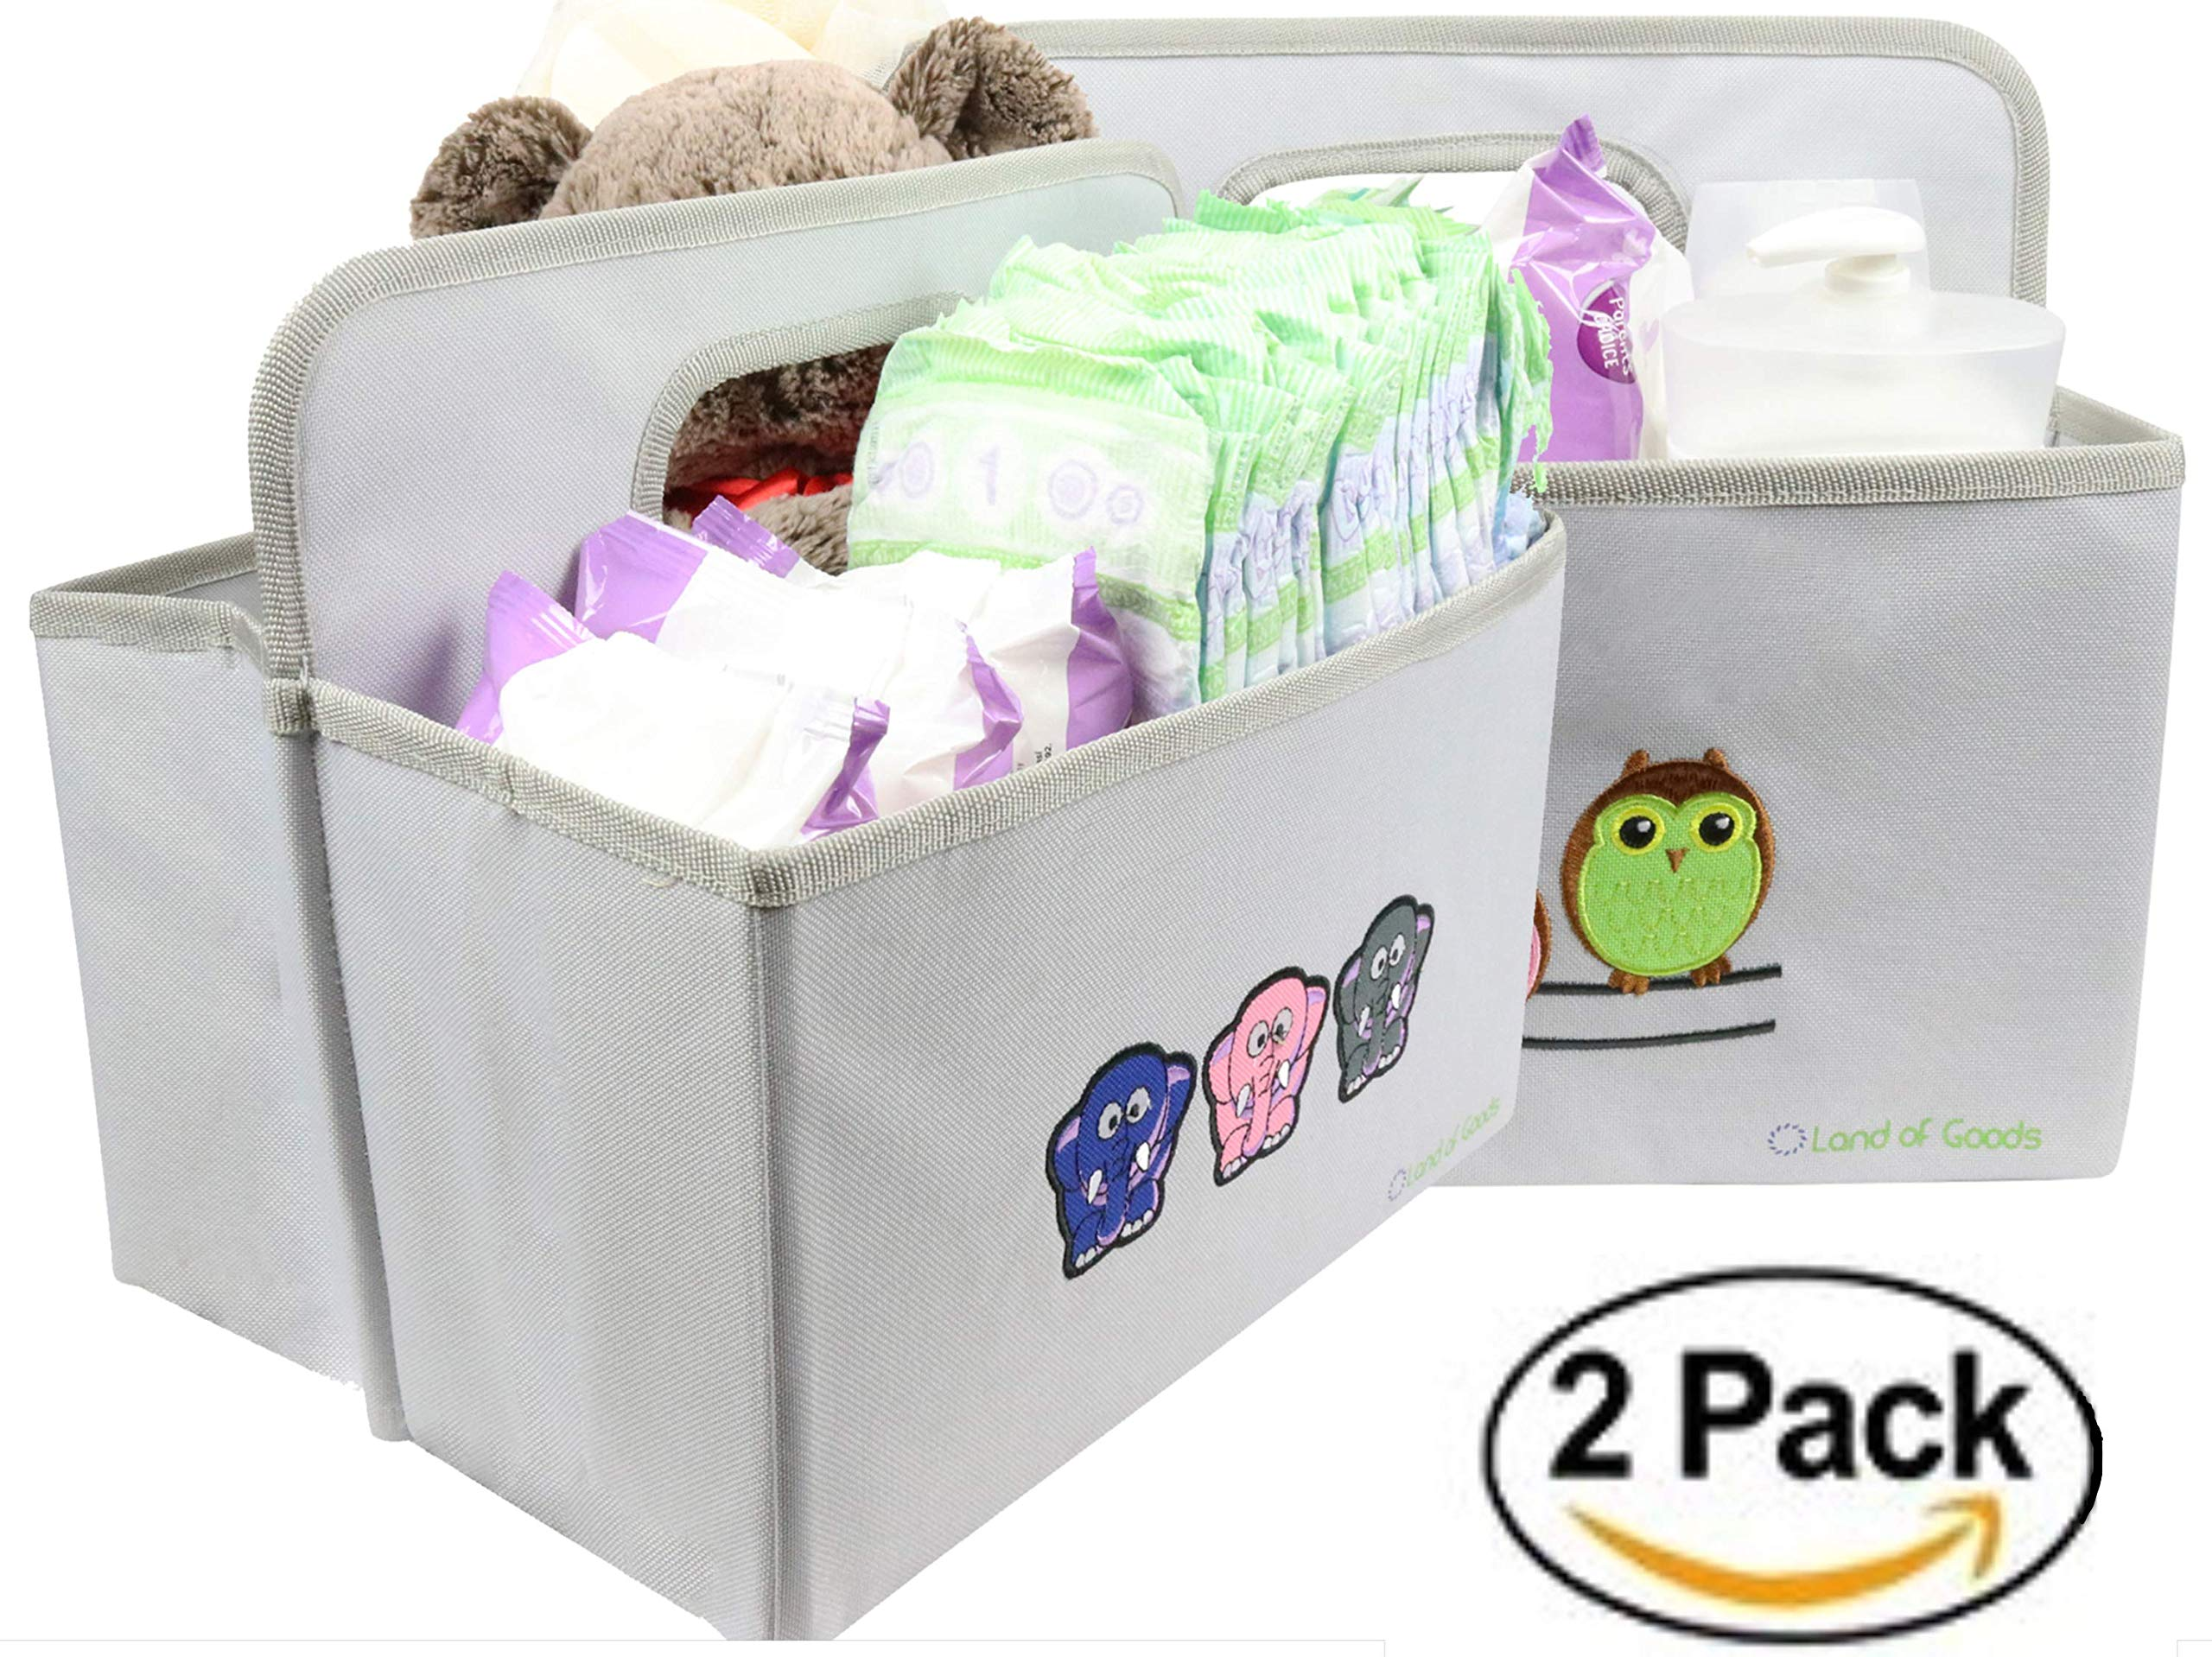 Pack of 2 Collapsible Nursery Storage Bins/Diaper Caddy Organizers/Portable Car Tote Holder for Girls and Boys for Newborn Registry (Elephants & Owls) by Land of Goods